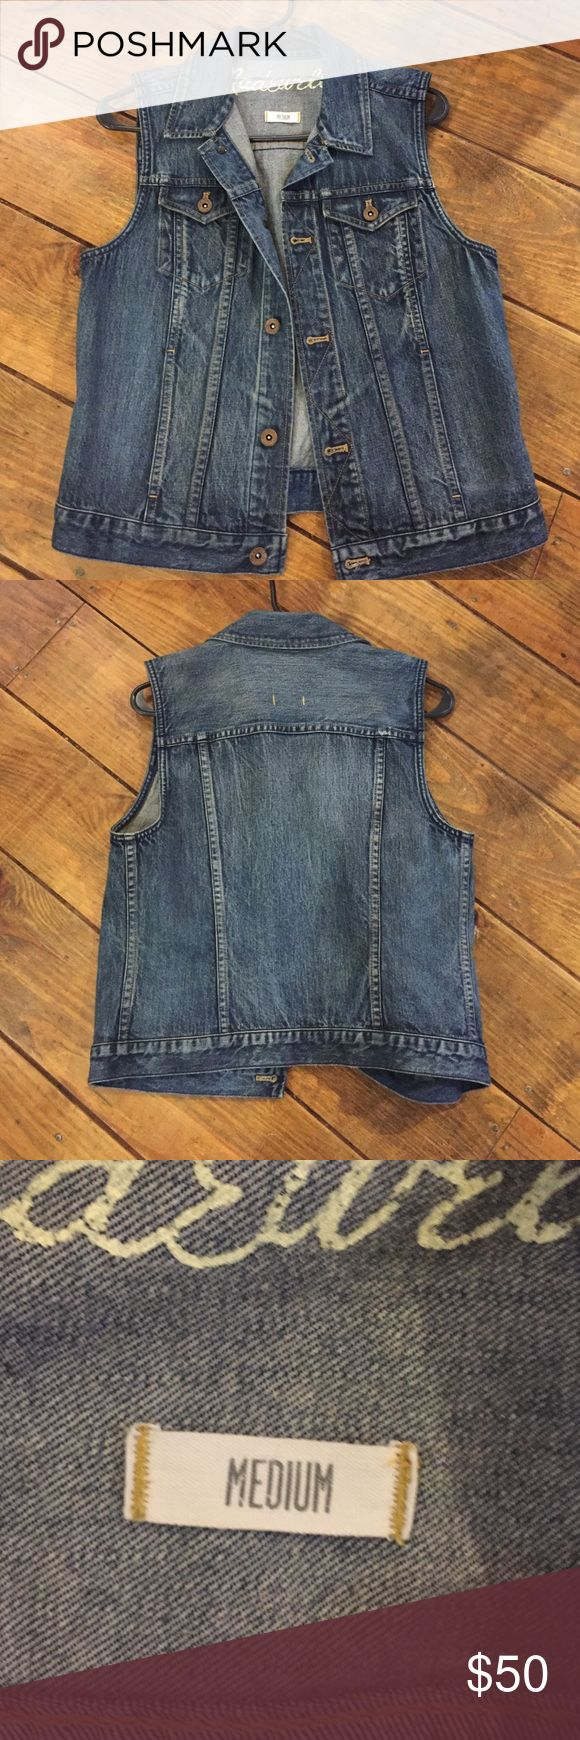 Madewell blue jean vest In excellent condition. Worn twice. Madewell Jackets & Coats Vests